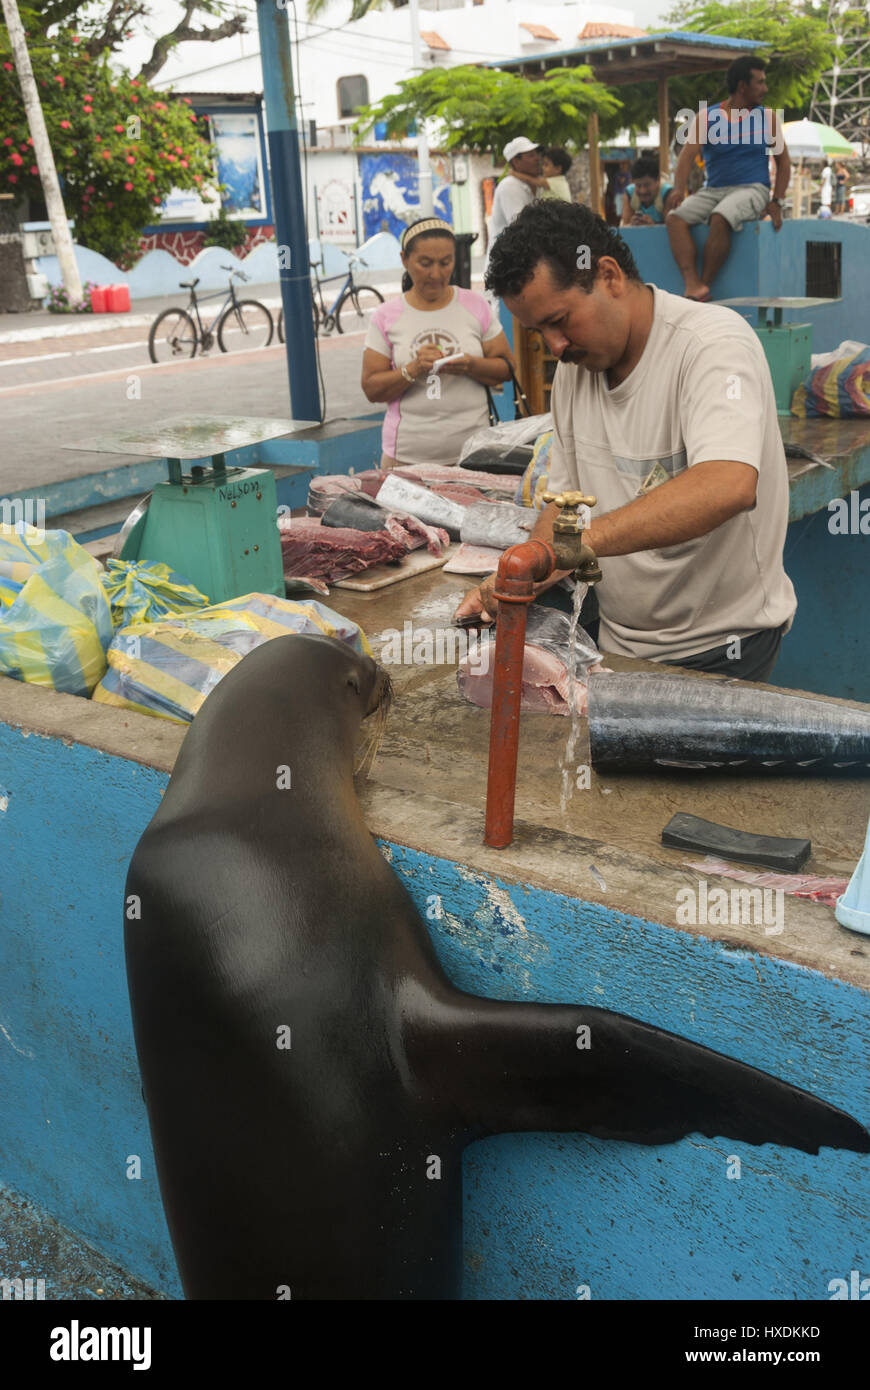 Ecuador, Galapagos, Santa Cruz island, Puerto Ayora, outdoor fish market, seal begging for fish - Stock Image